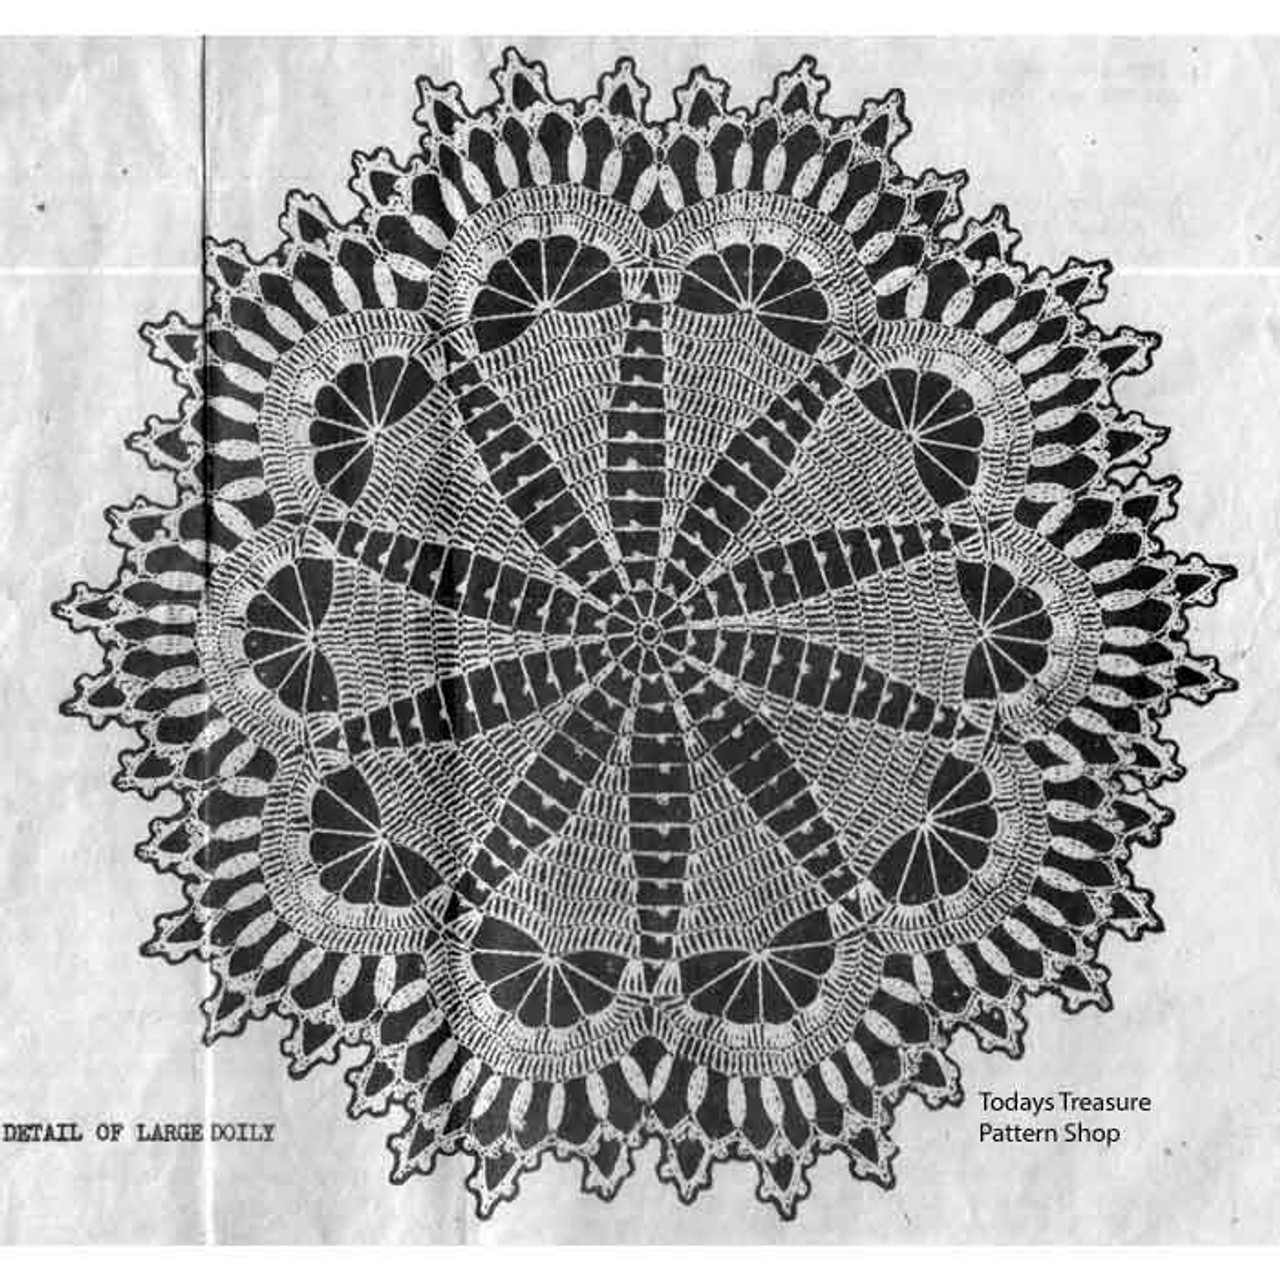 Detail of Star Doily with Shell Border Pattern